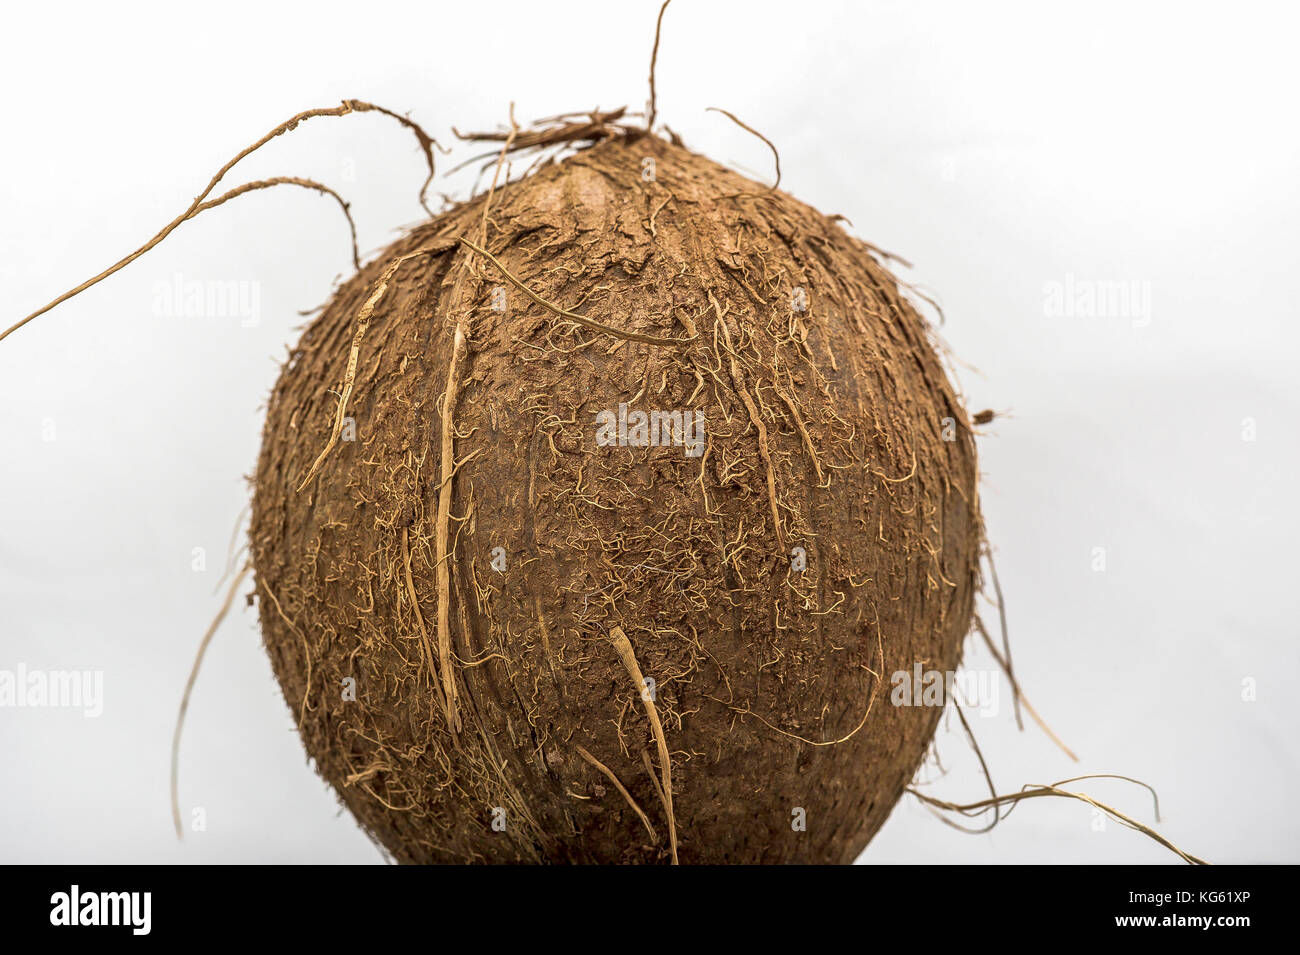 coconut fibres stock photos coconut fibres stock images. Black Bedroom Furniture Sets. Home Design Ideas